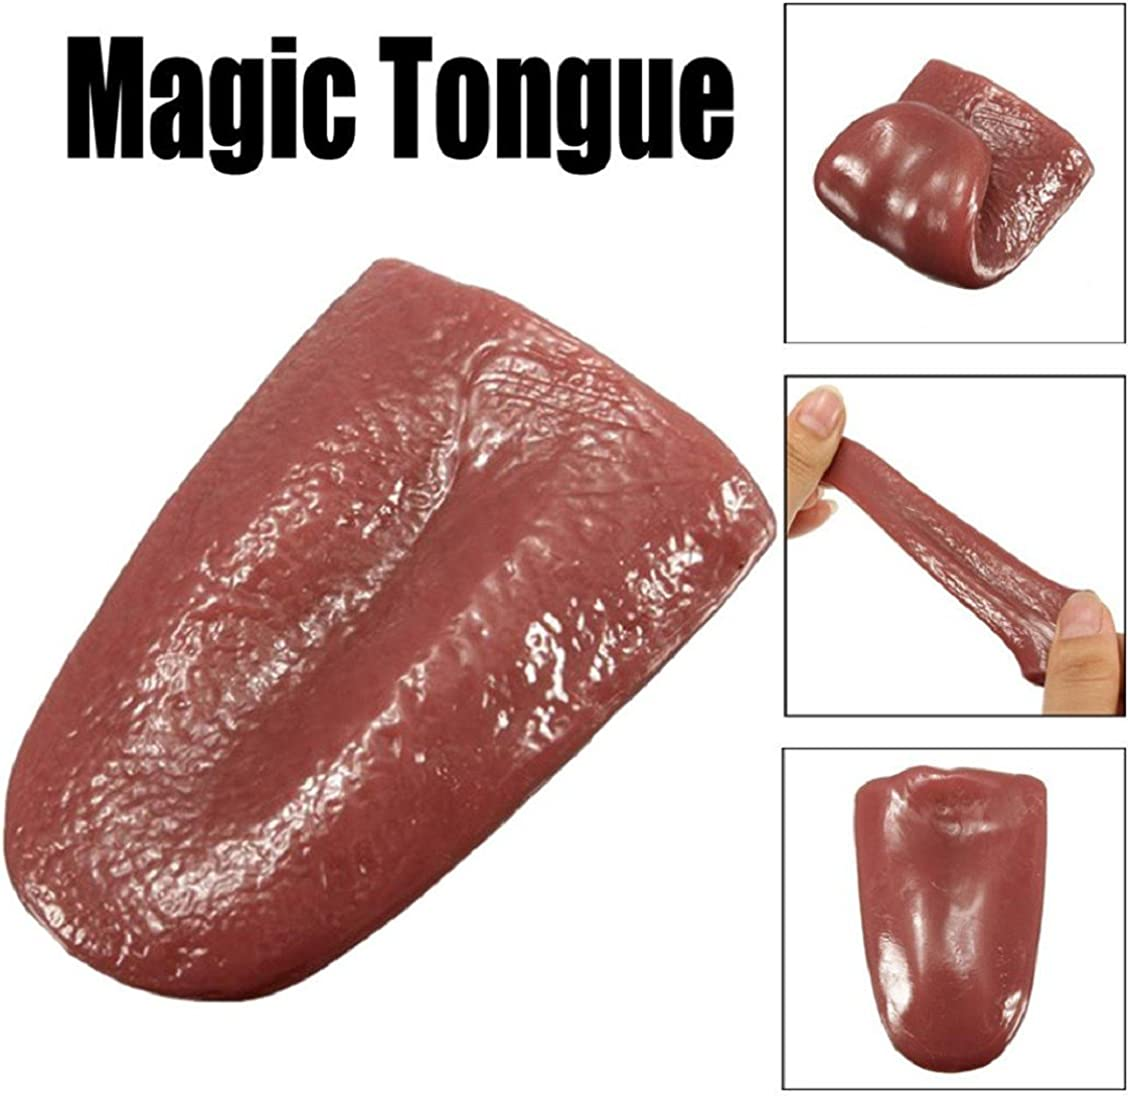 OUERMAMA 2 Pcs Horrible Stretchable Tongue Realistic Magic Tongue Props Fake Tongue Specially Function for Halloween Close-up Terror Magic Trick Comedy Magic Trick Accessories